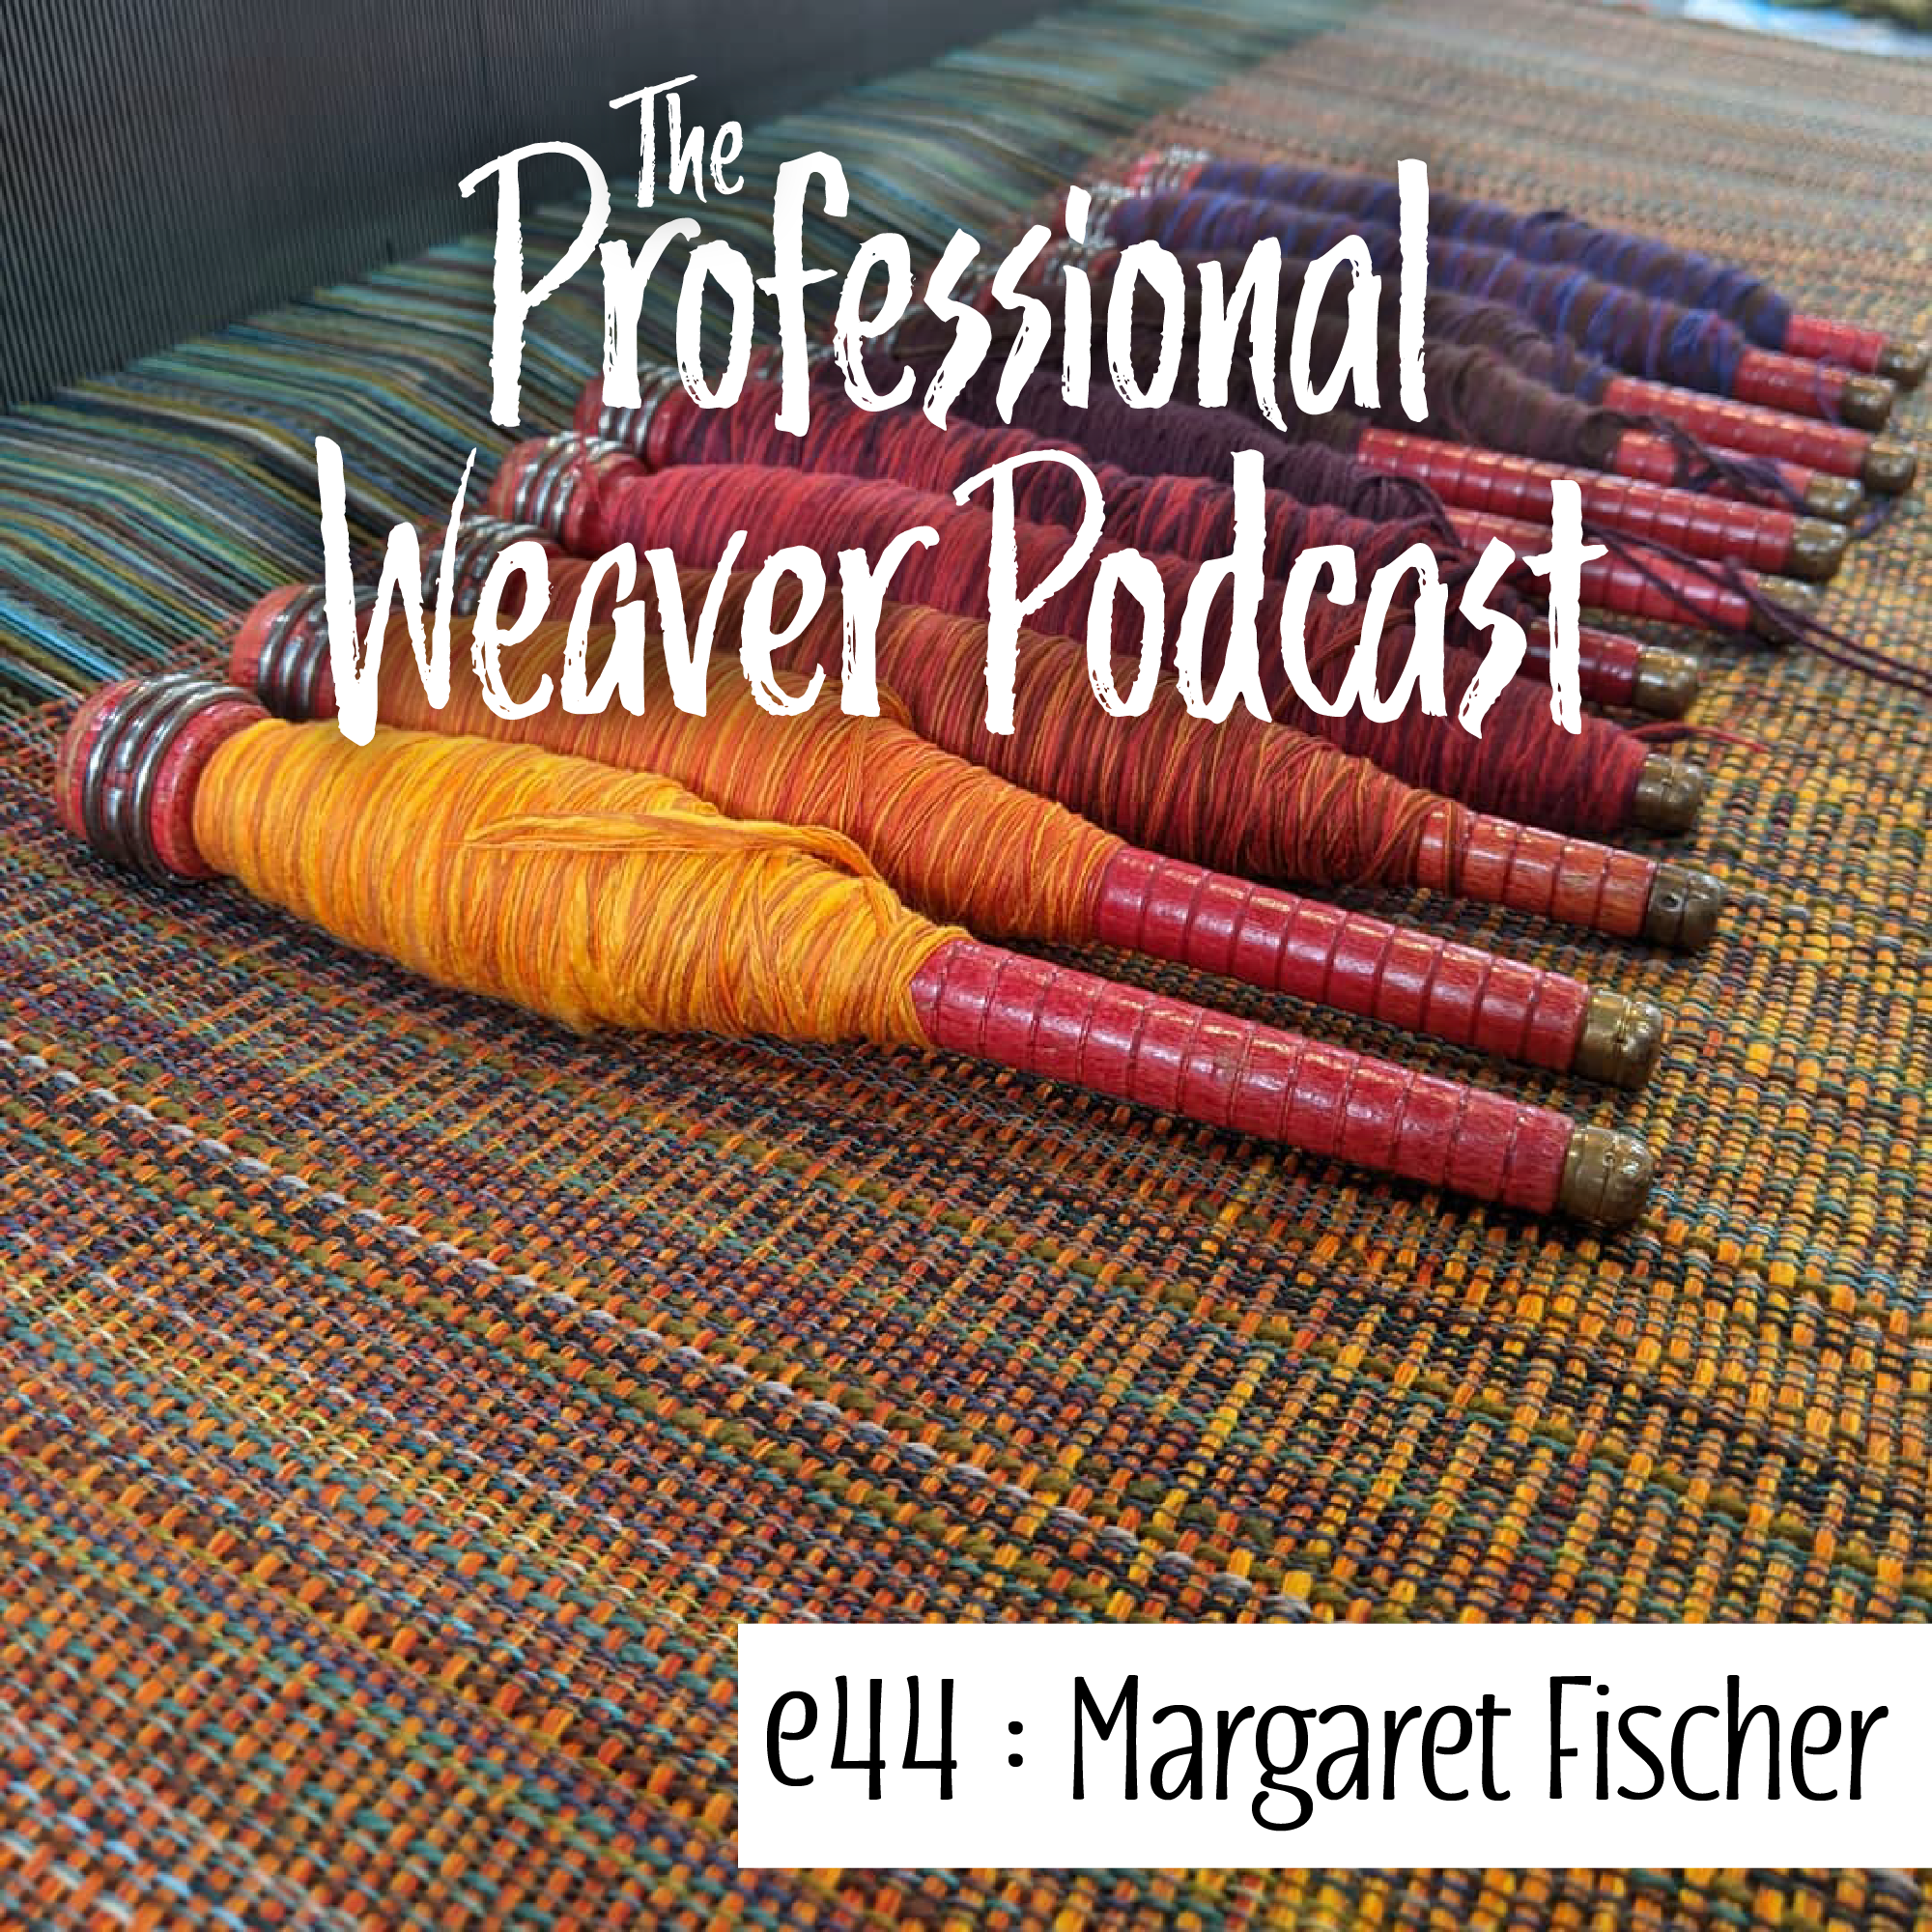 S2E14 : Margaret Fischer on how her business evolved, production weaving, and about making a career to support what you want out of life.